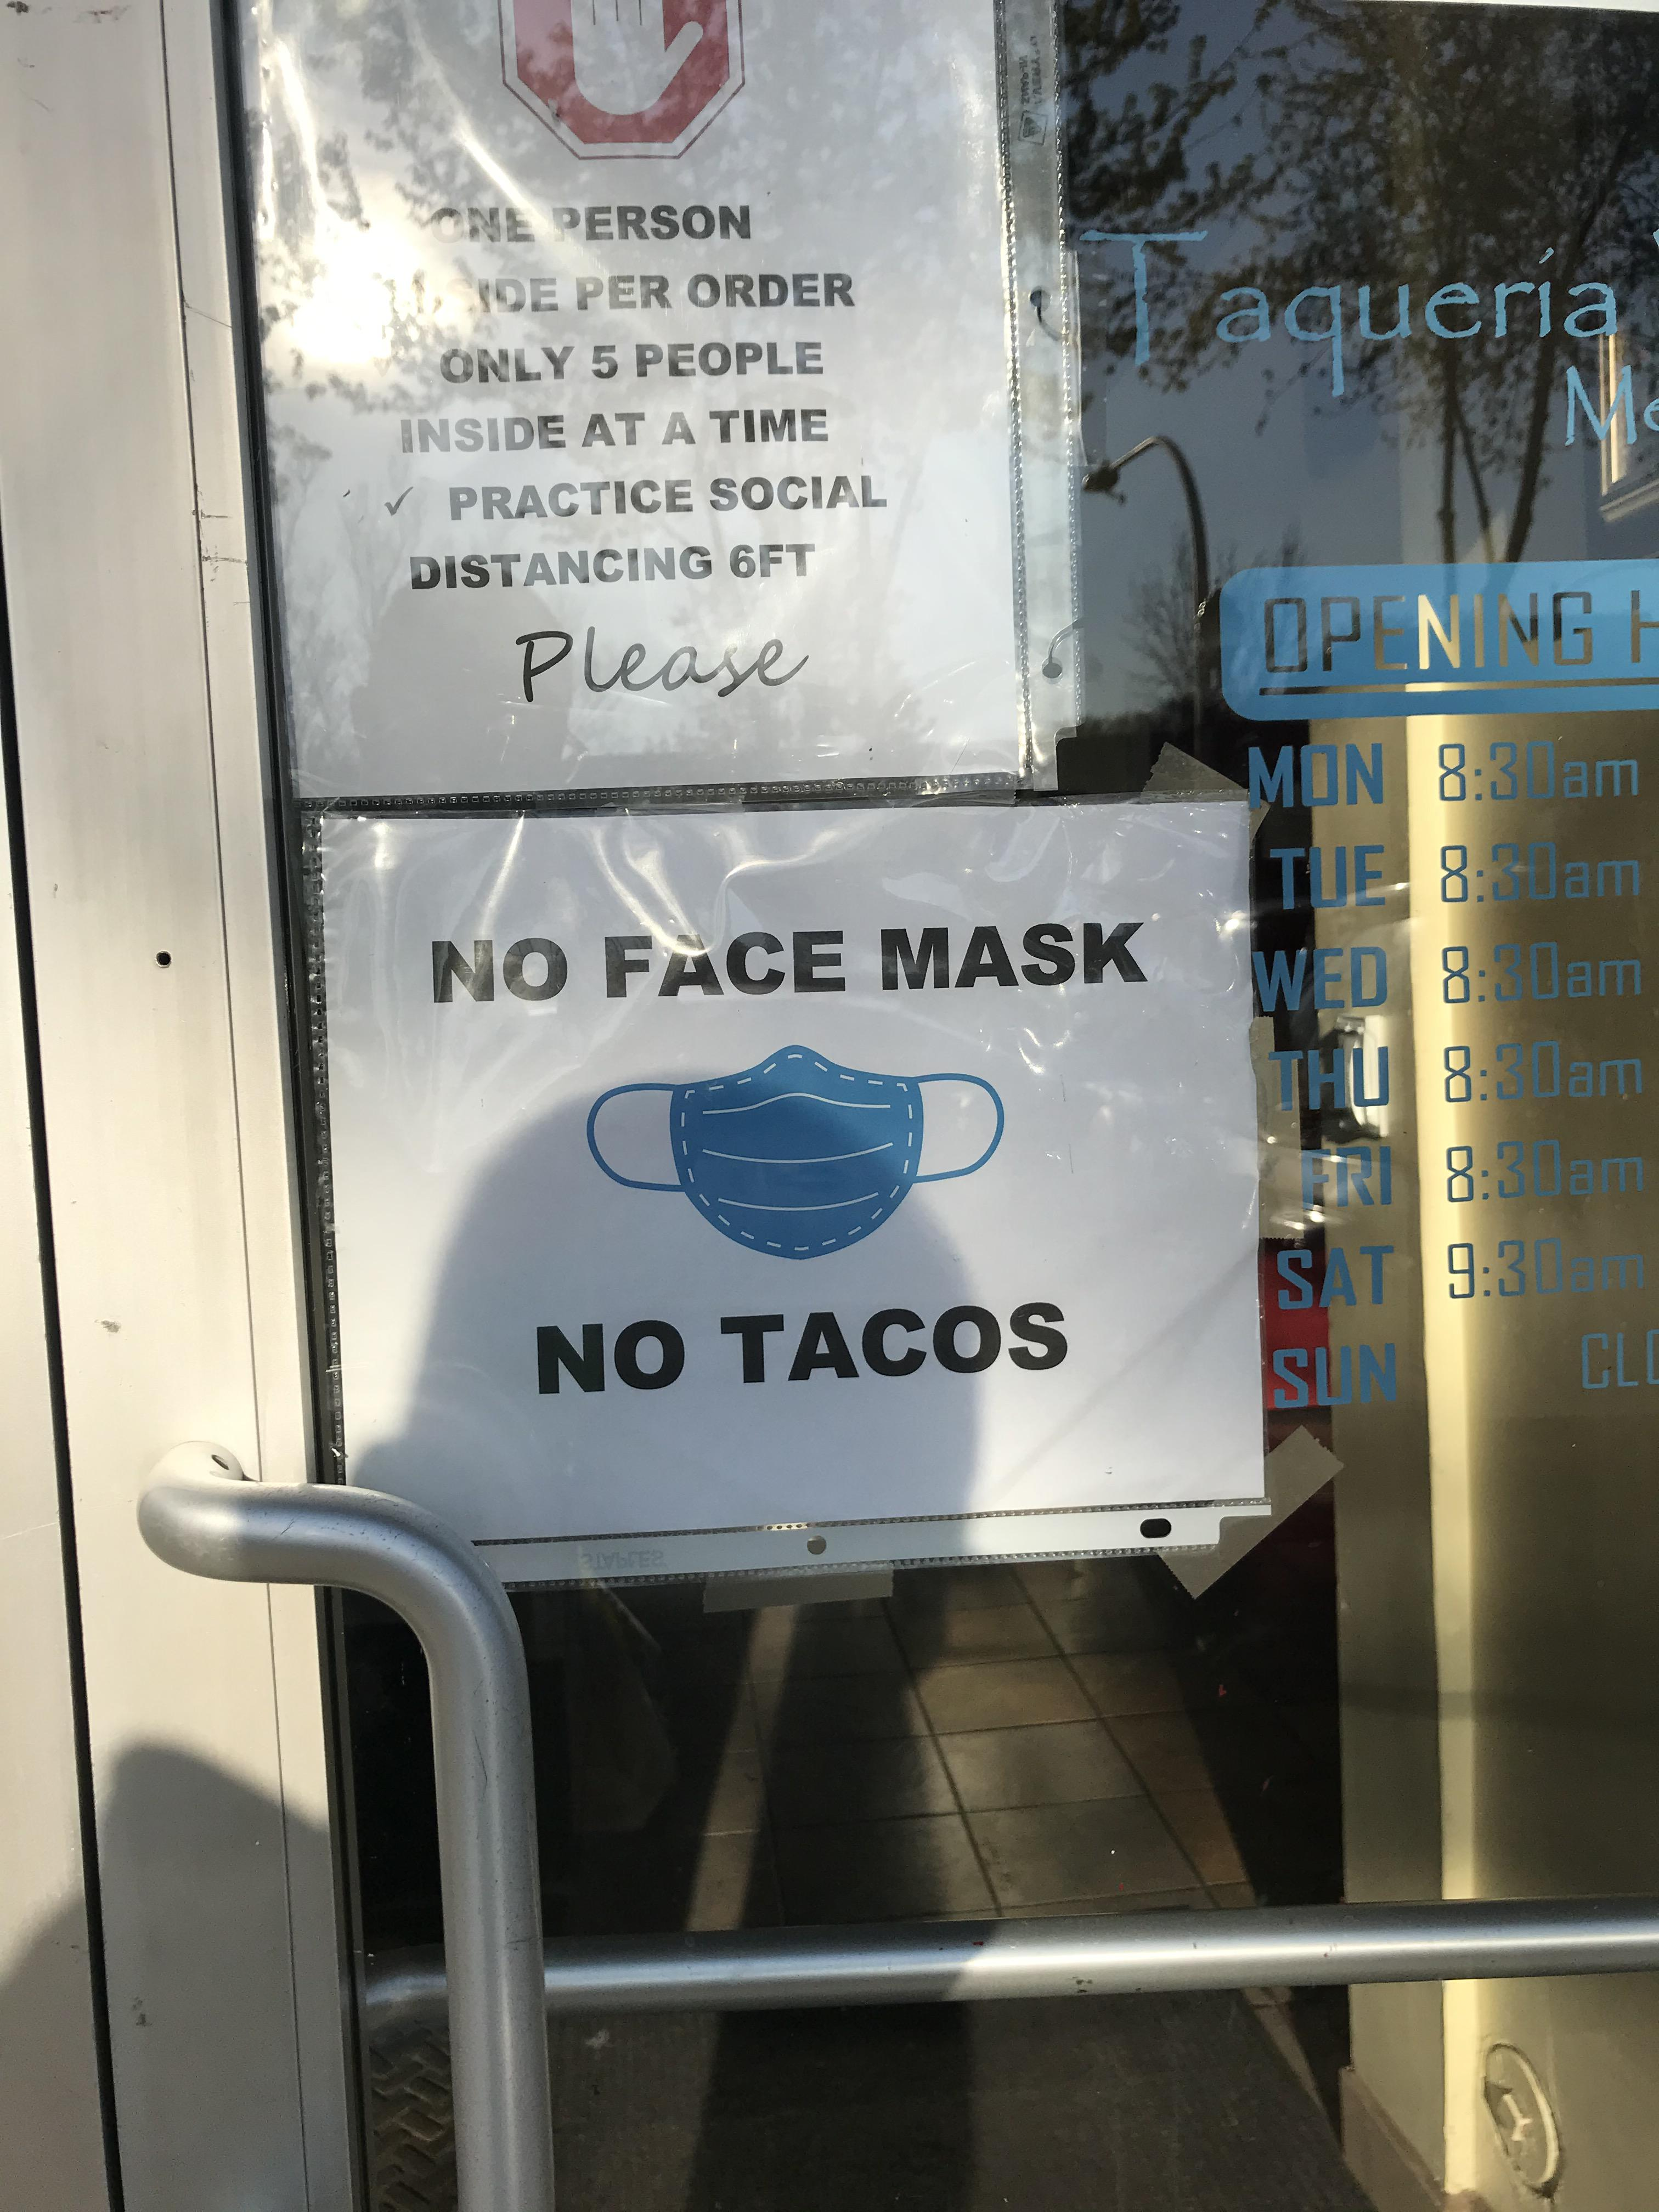 My local taco place has a sign that says no face mask, no tacos